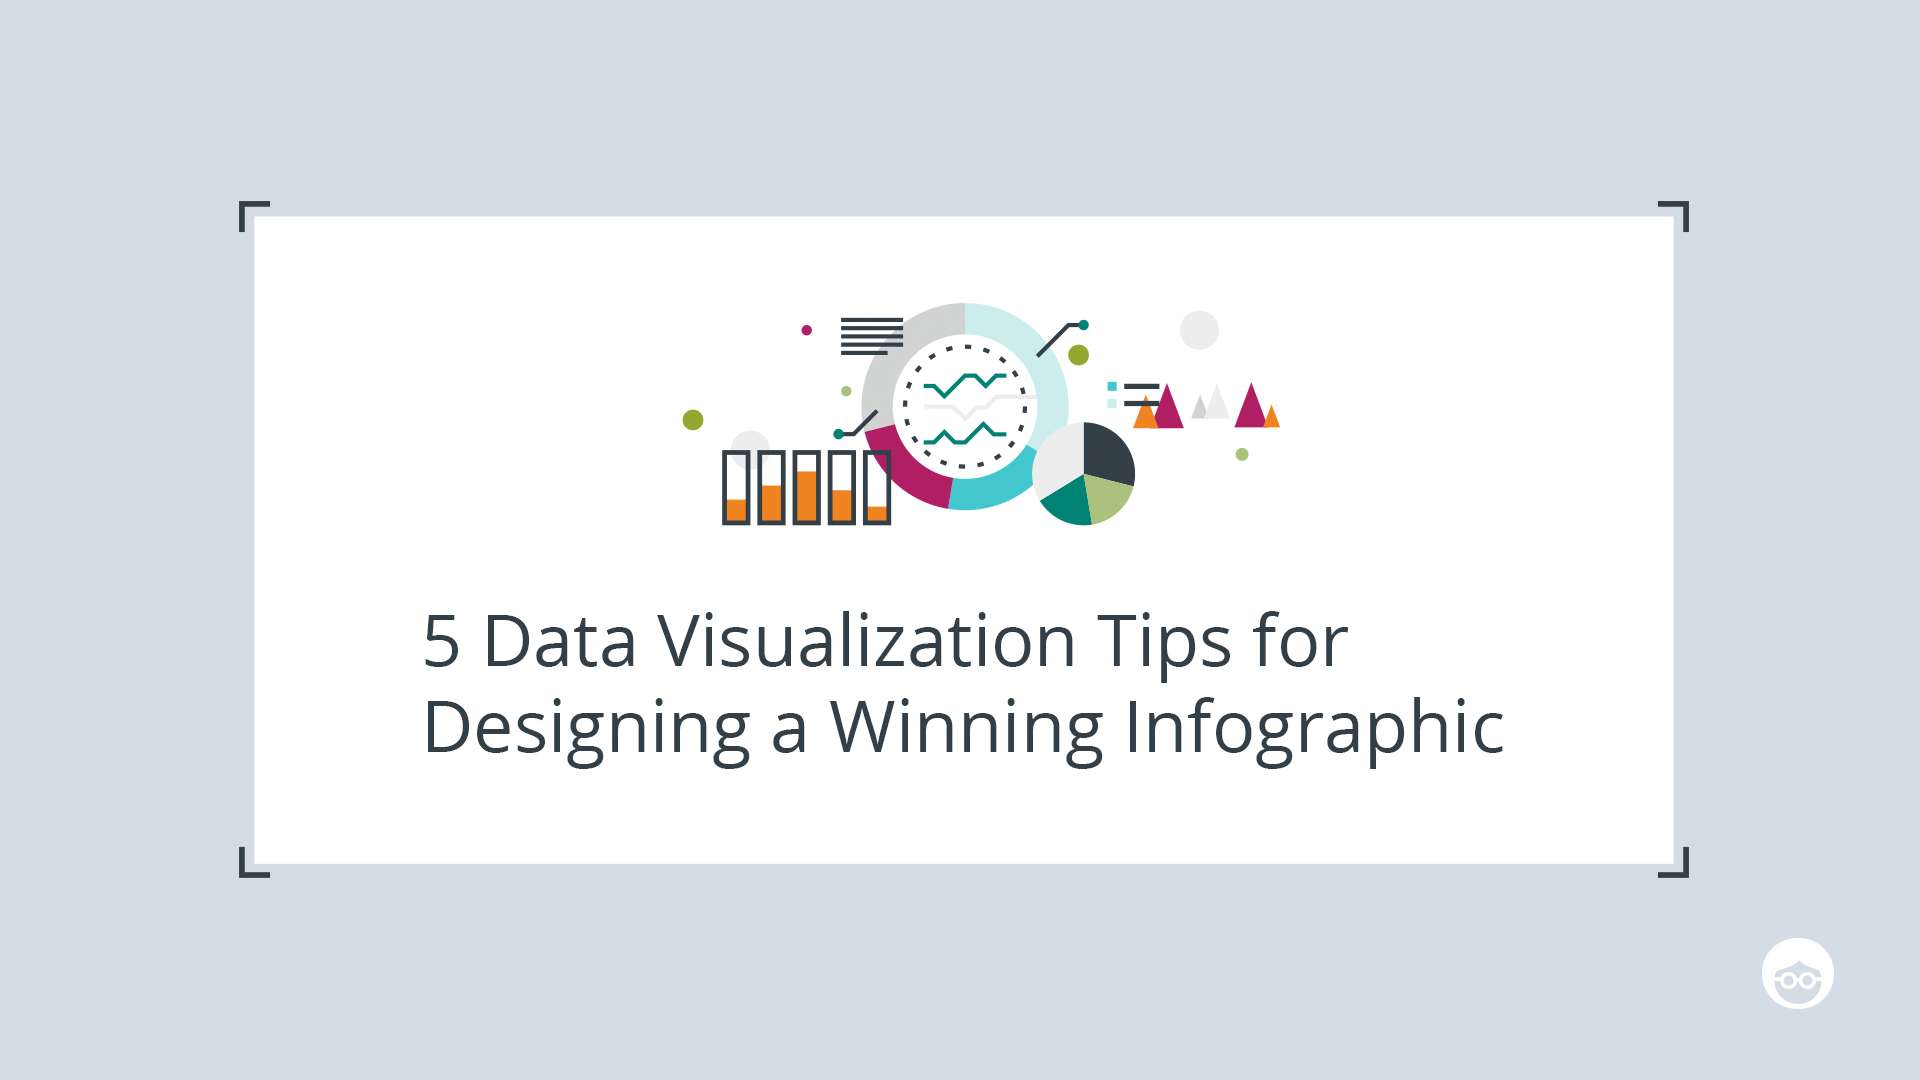 5 Data Visualization Lessons For Creating Winning Infographics